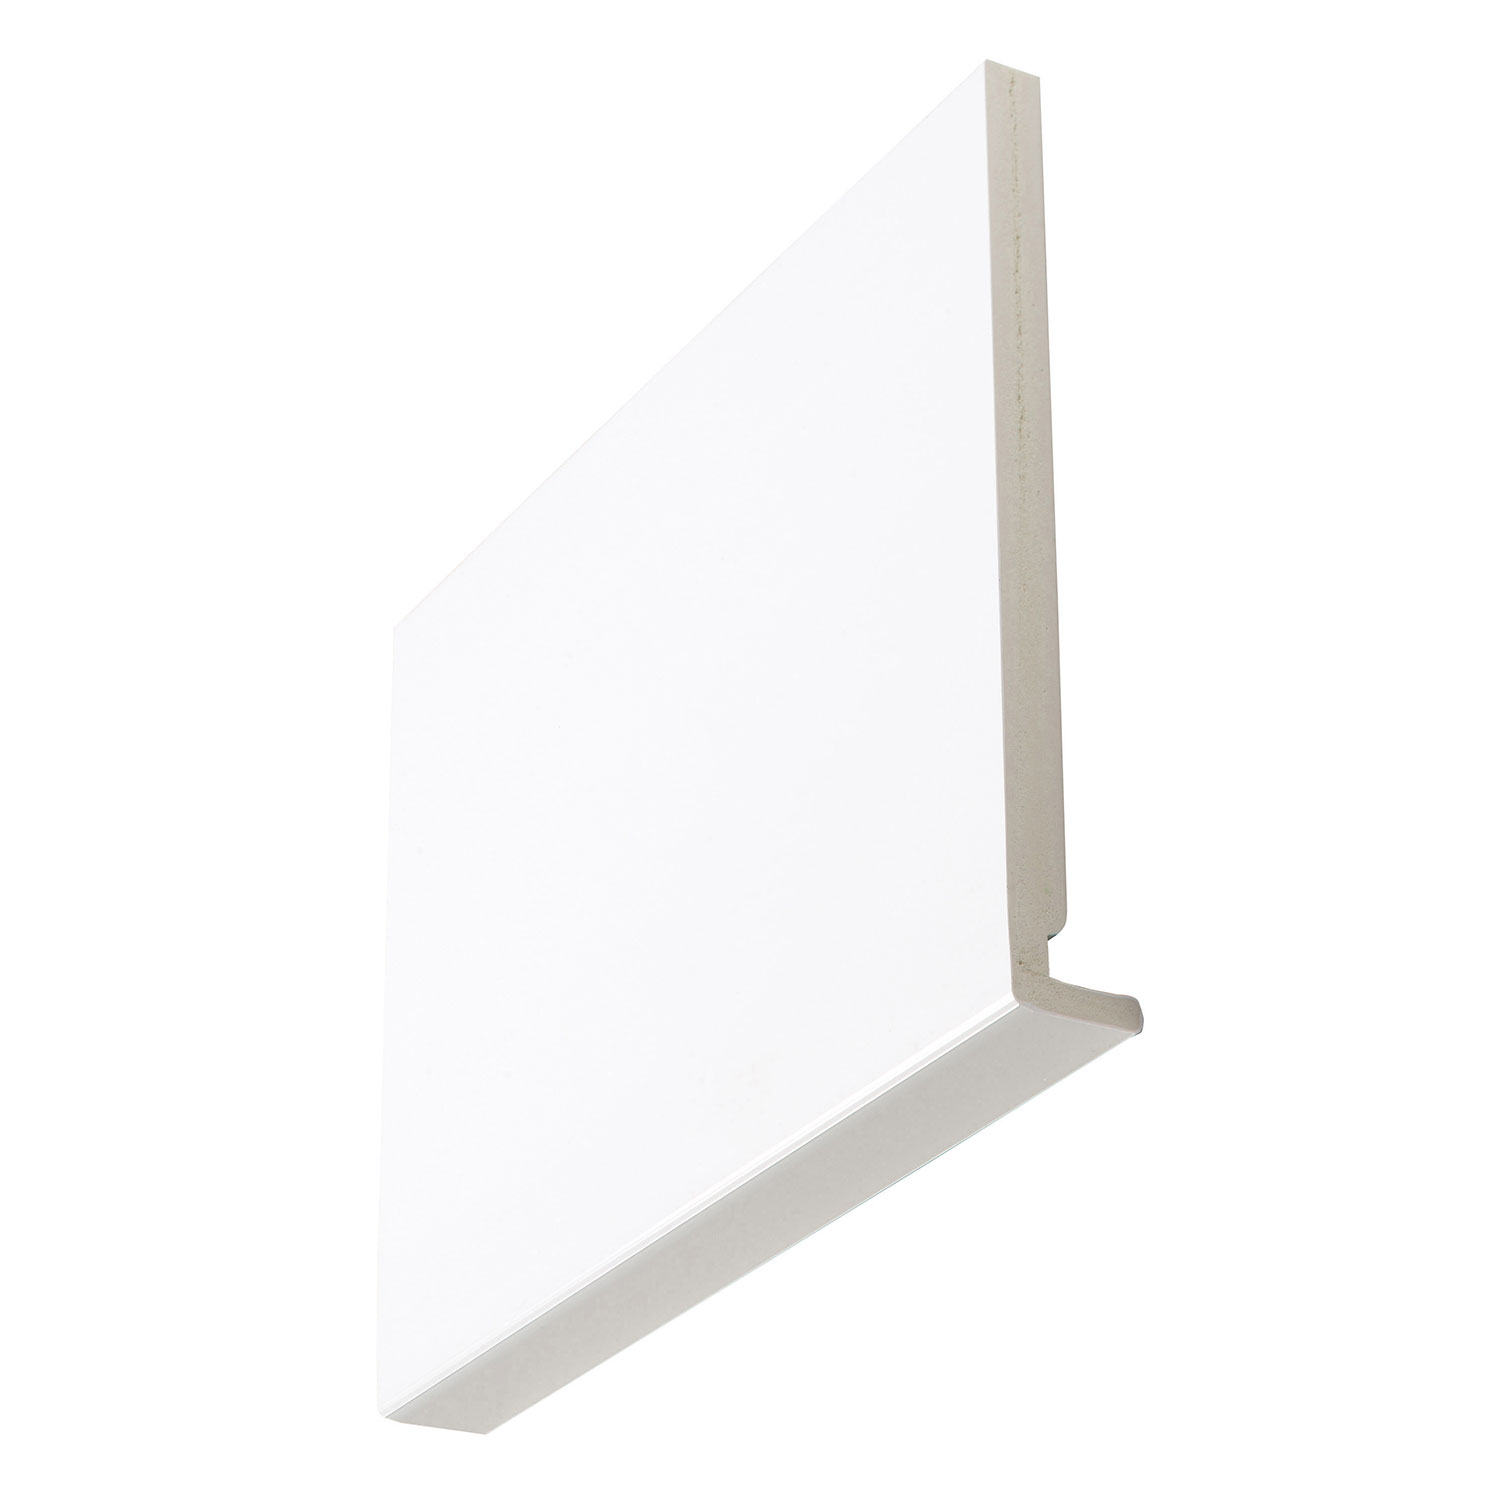 18mm Square White Magnum Fascia Boards